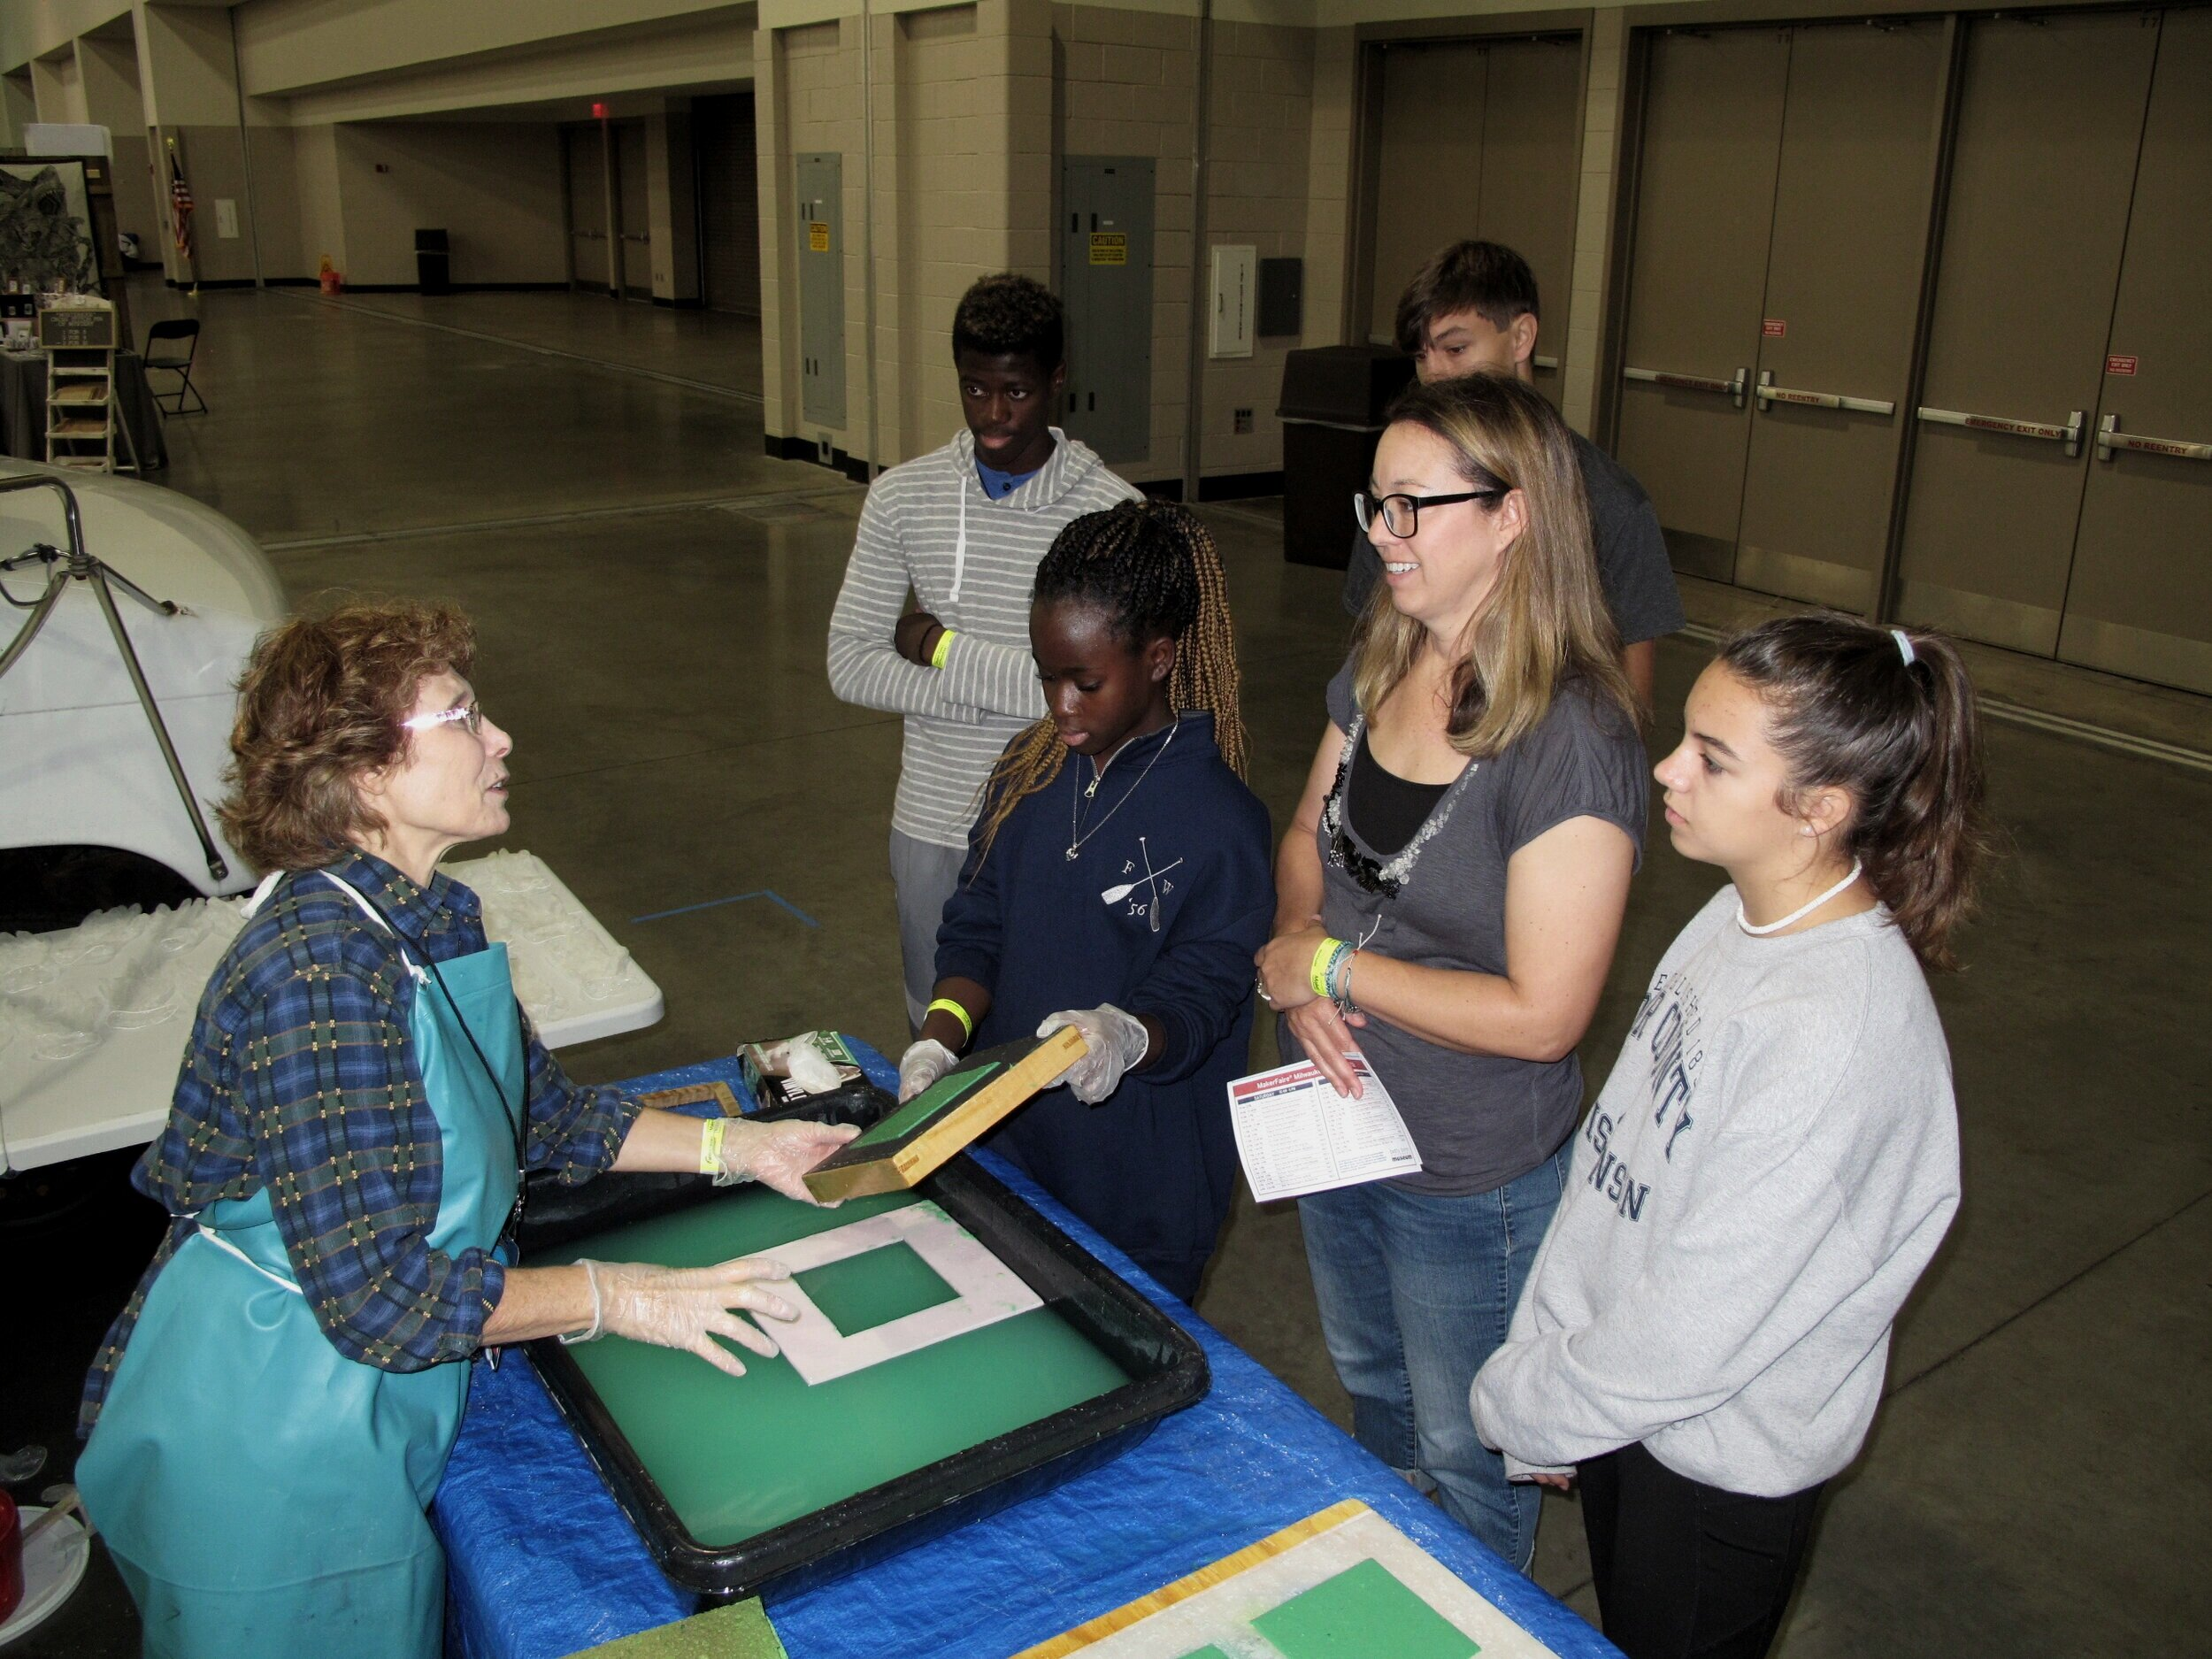 2019 Milwaukee Maker Faire - We gave away hundreds of hand made prints  @ our Make A Sheet,Take A Sheet paper-making and relief  print station